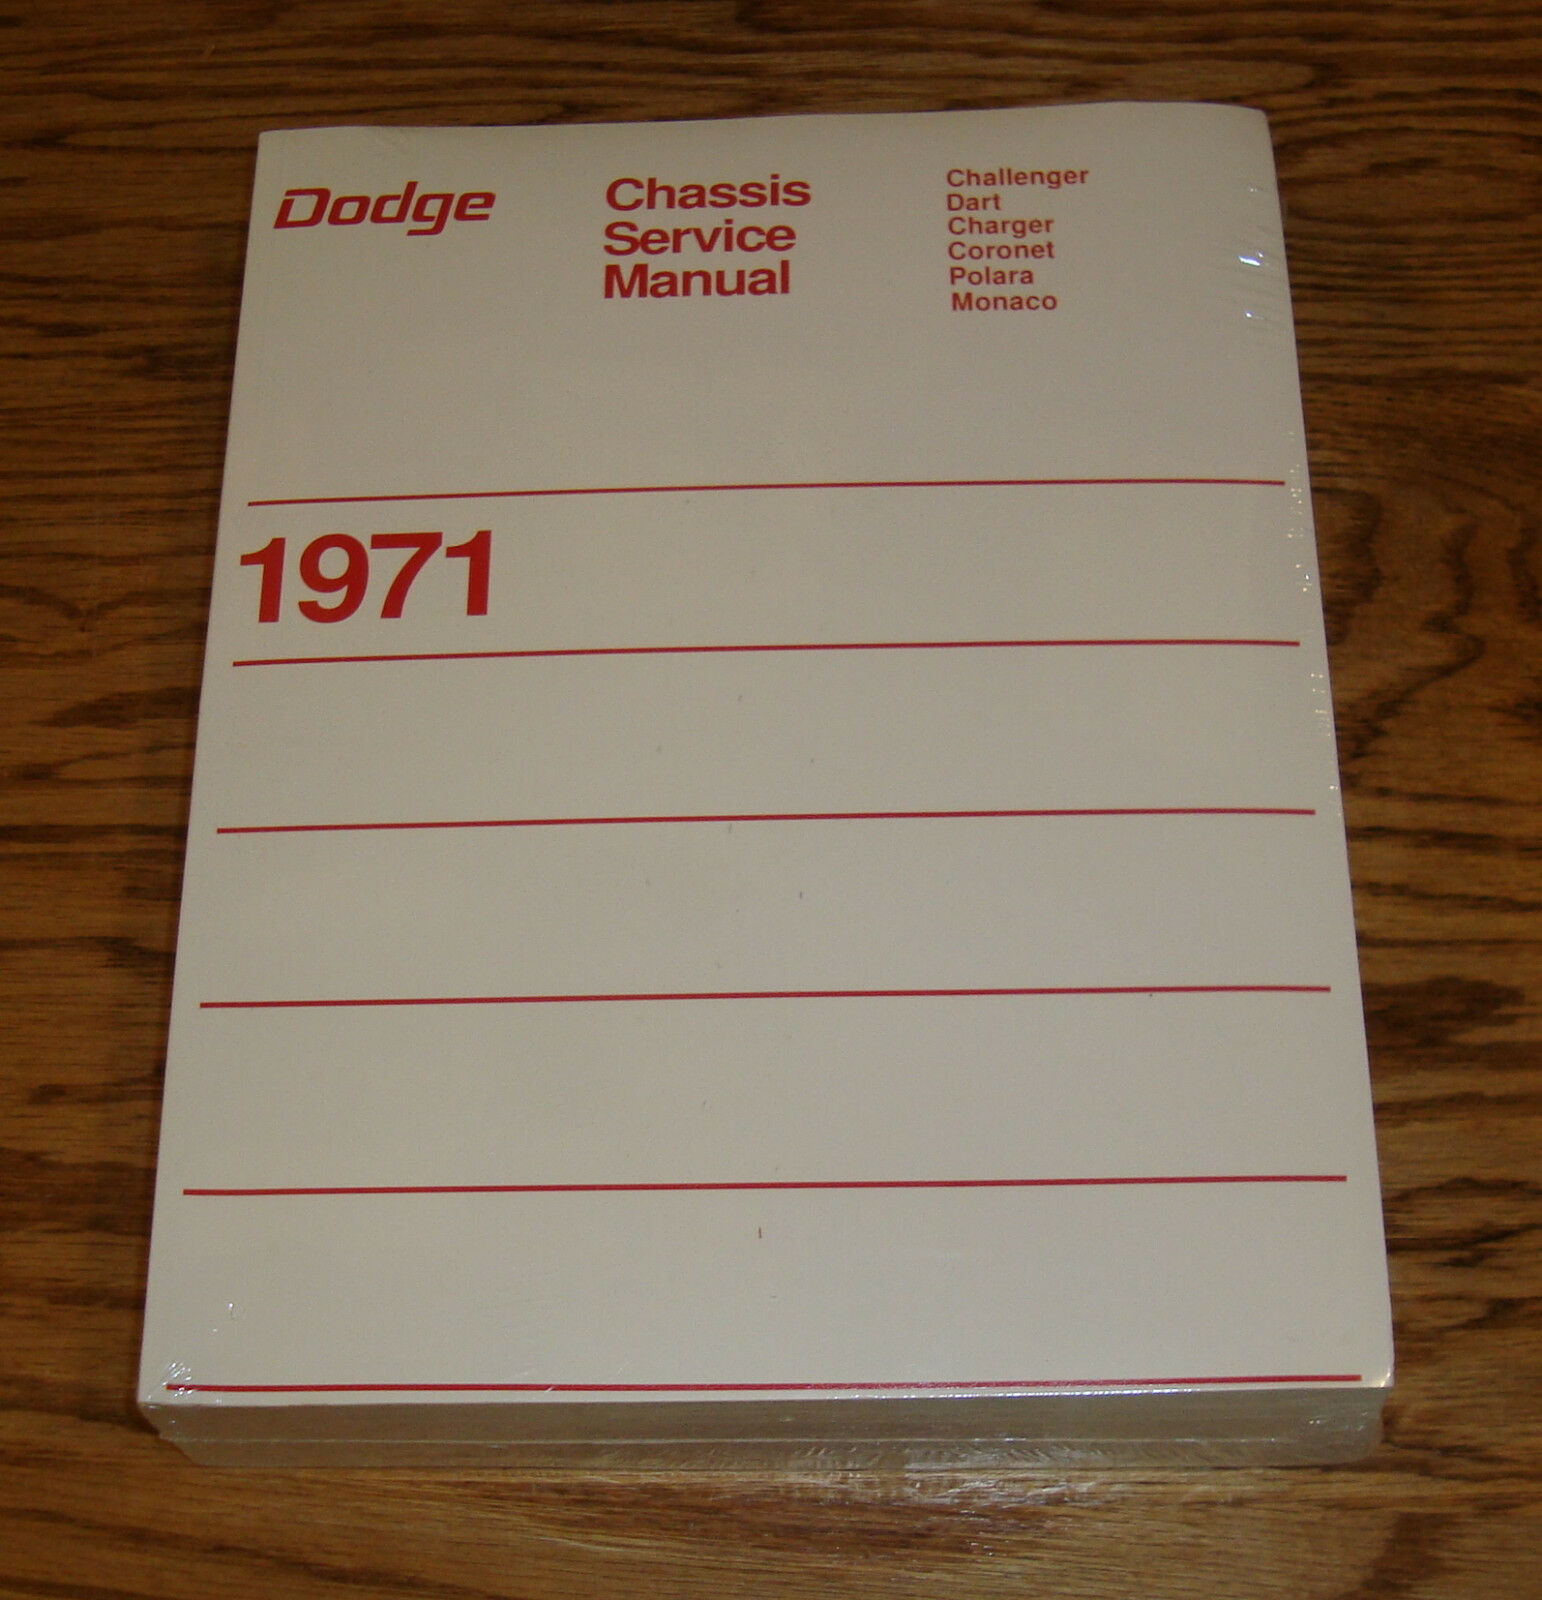 1971 dodge chassis service shop manual 71 challenger charger dart rh picclick com 1970 Challenger 1971 Charger